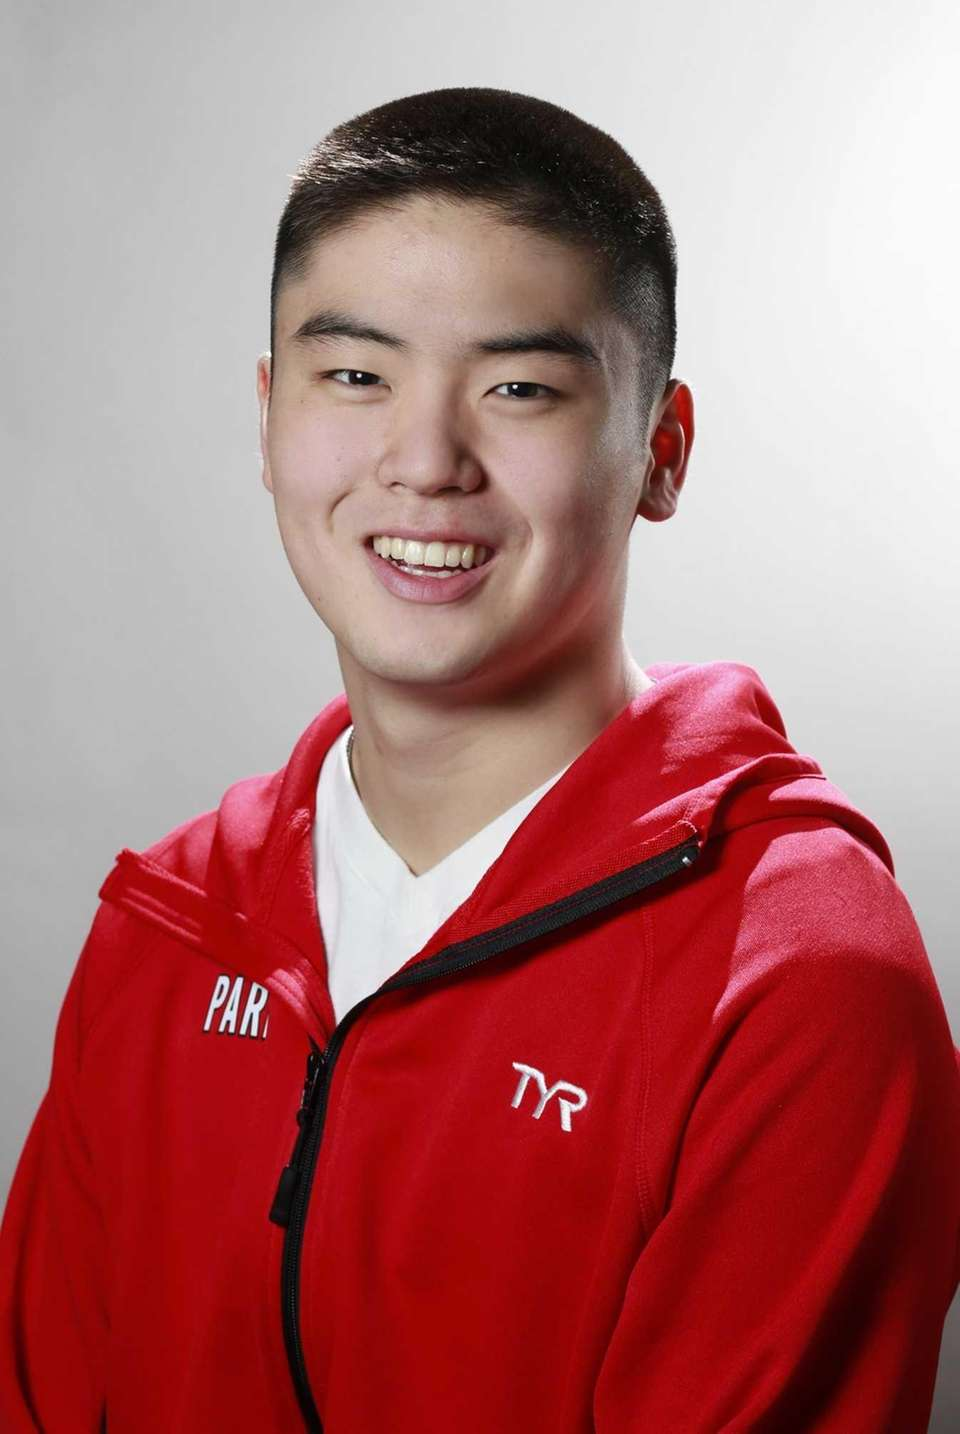 Park won his second-consecutive 200 IM state championship